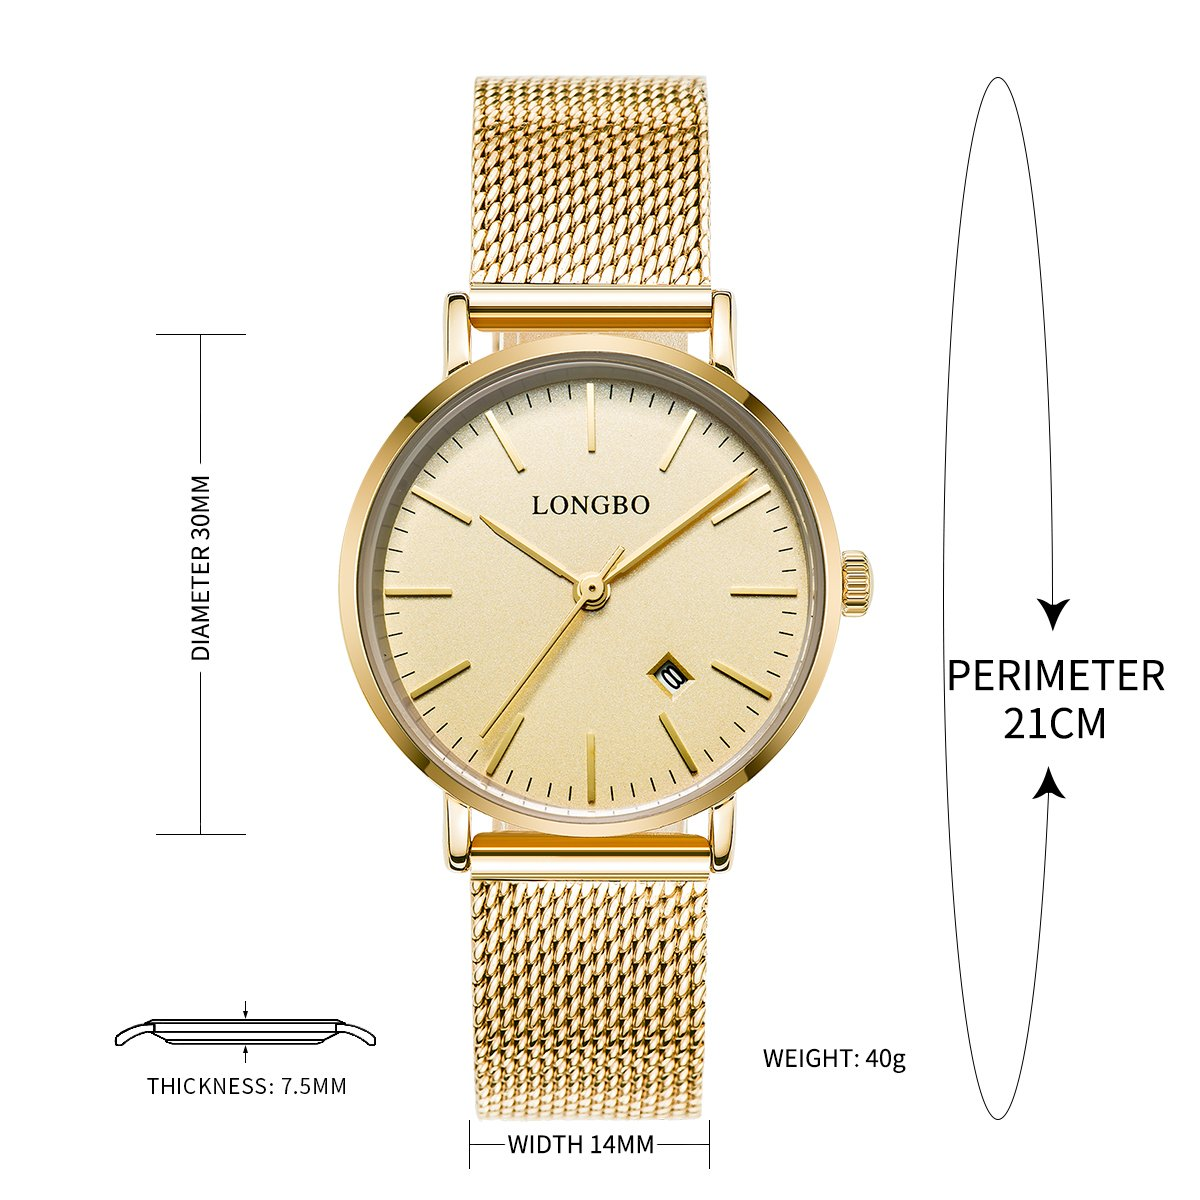 Amazon.com: LONGBO Simple Couple Watches Stainless Steel Band Analog Display Quartz Women Watch Gold Ultra Thin Dial Business Wristwatch Date Waterproof: ...